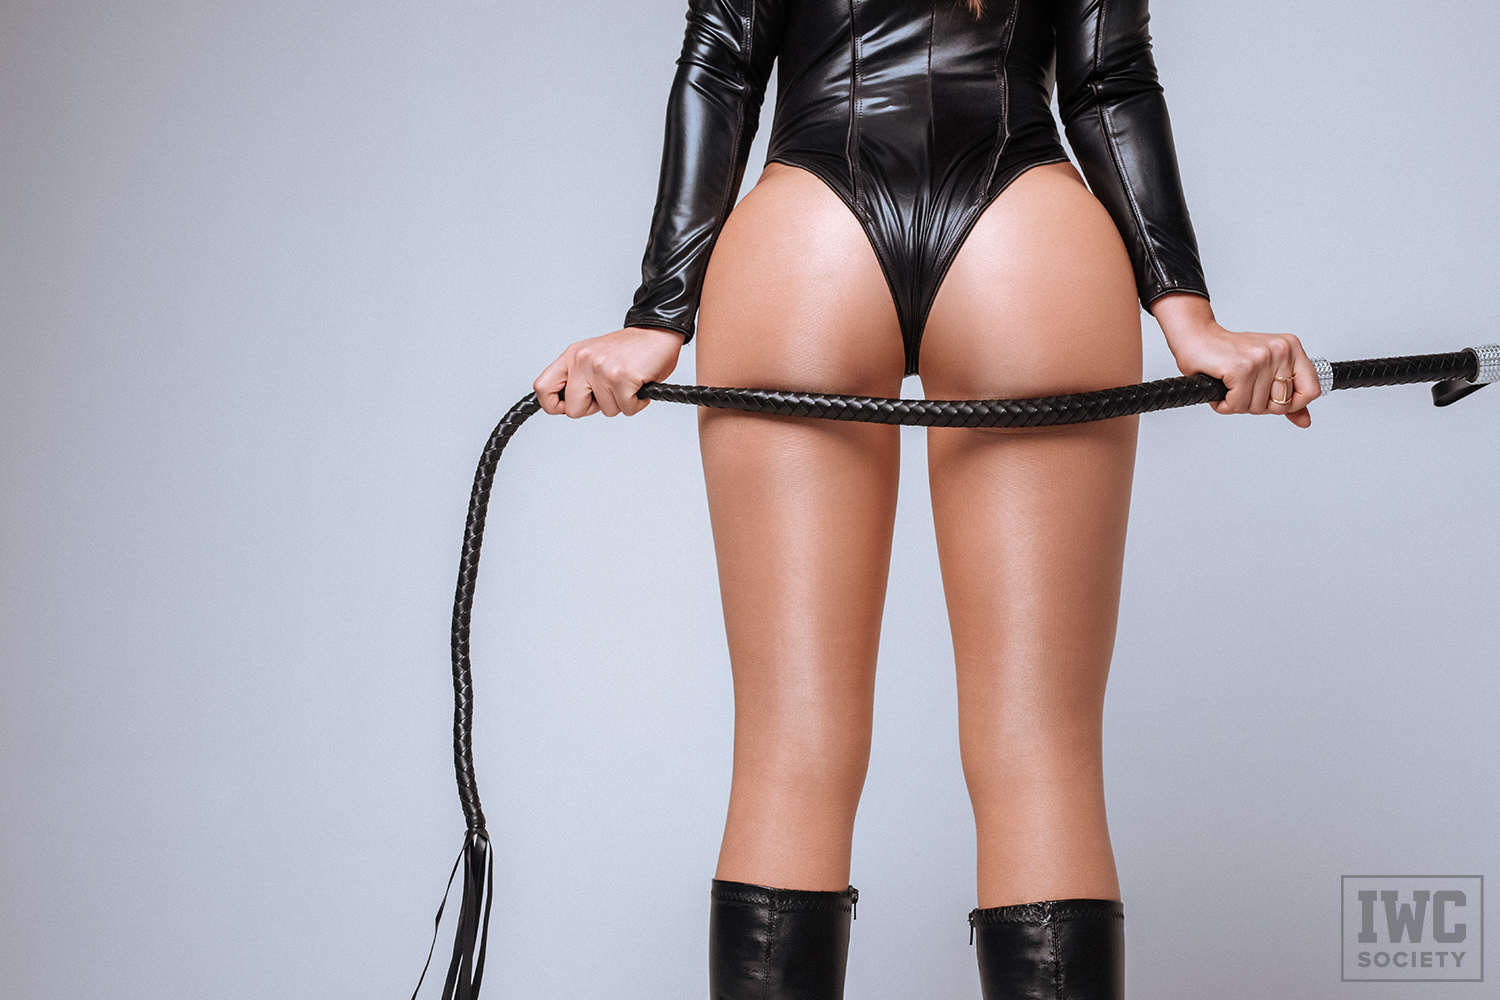 Ceara Lynch's butt with black whip